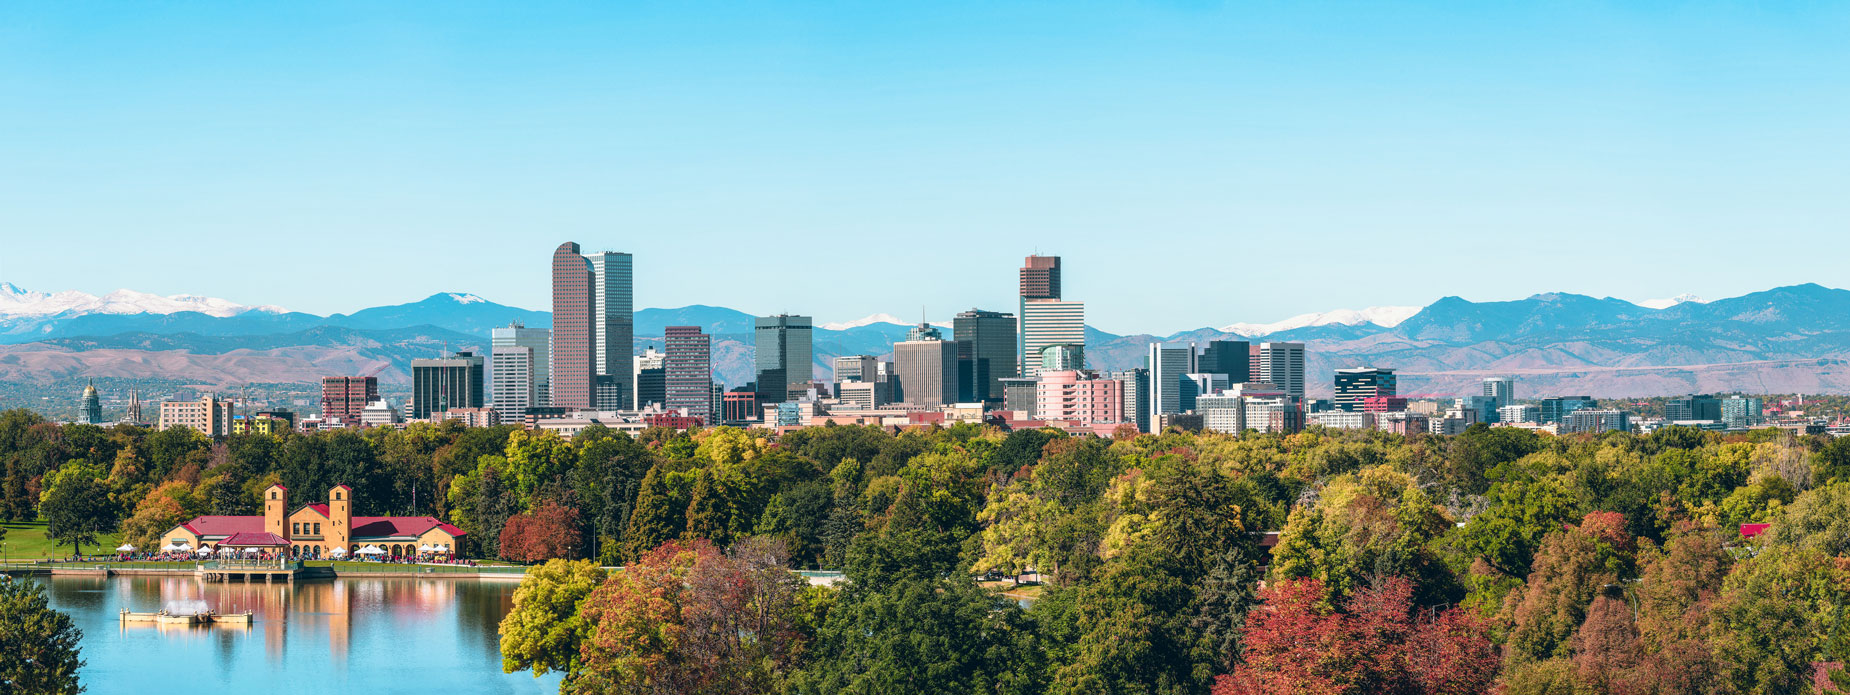 The city of Denver surrounded by picturesque mountains and colorful trees.